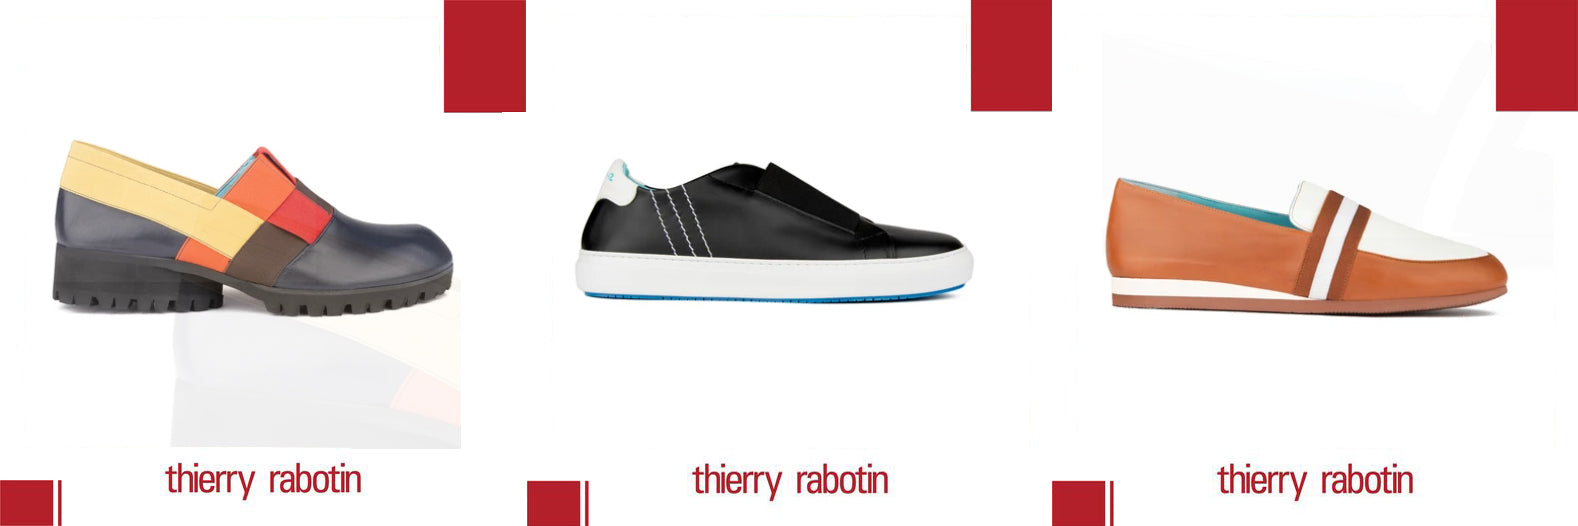 Italian loafers shoes